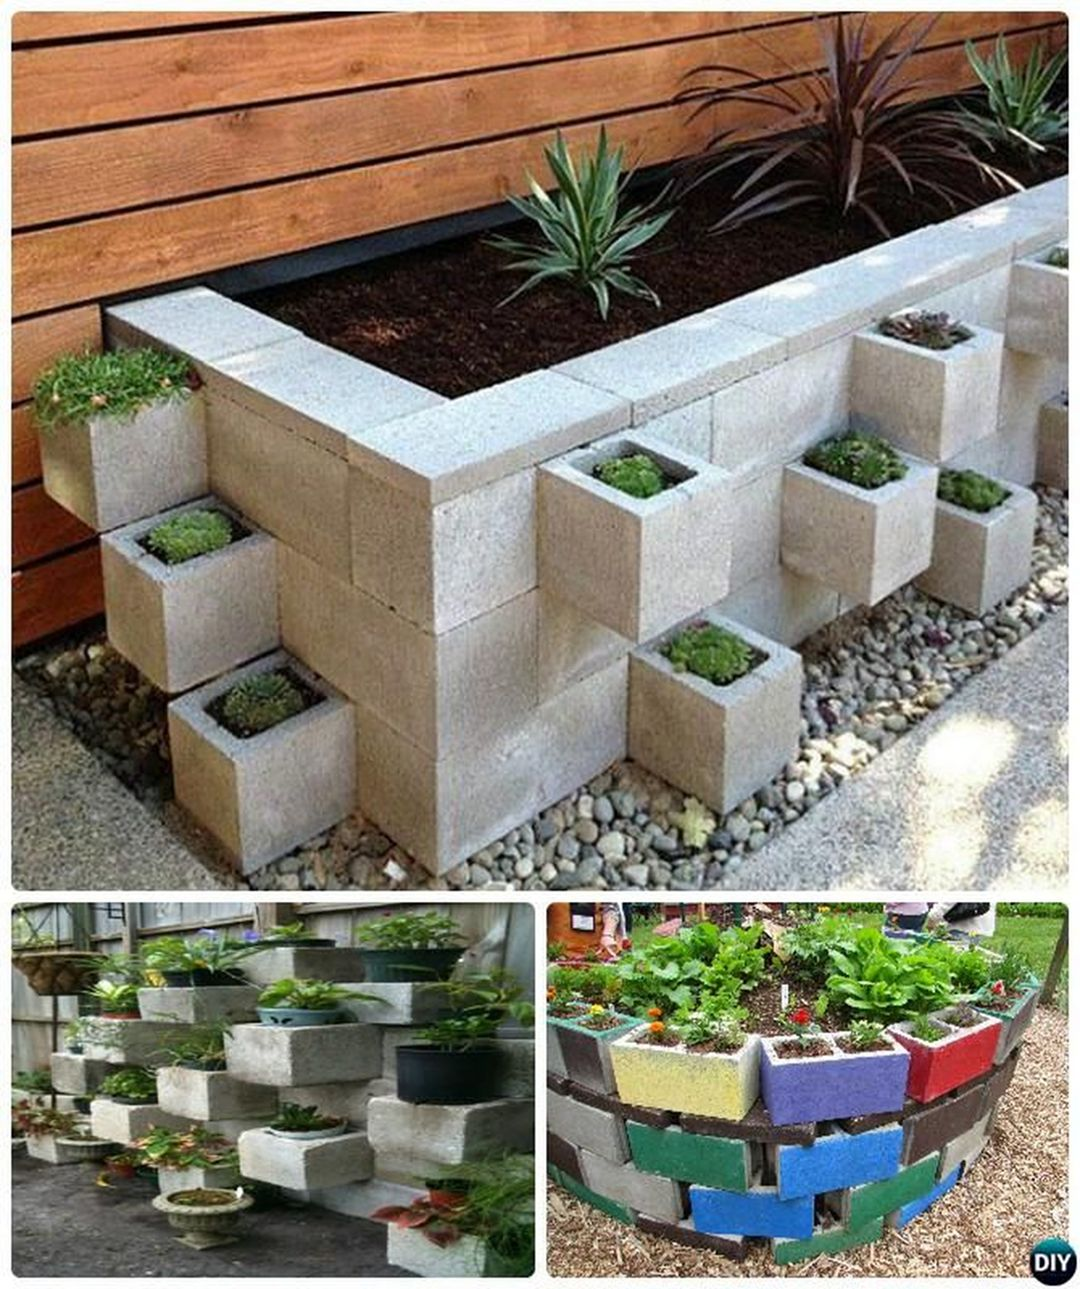 Easy And Inexpensive Cinder Block Garden Ideas 0690